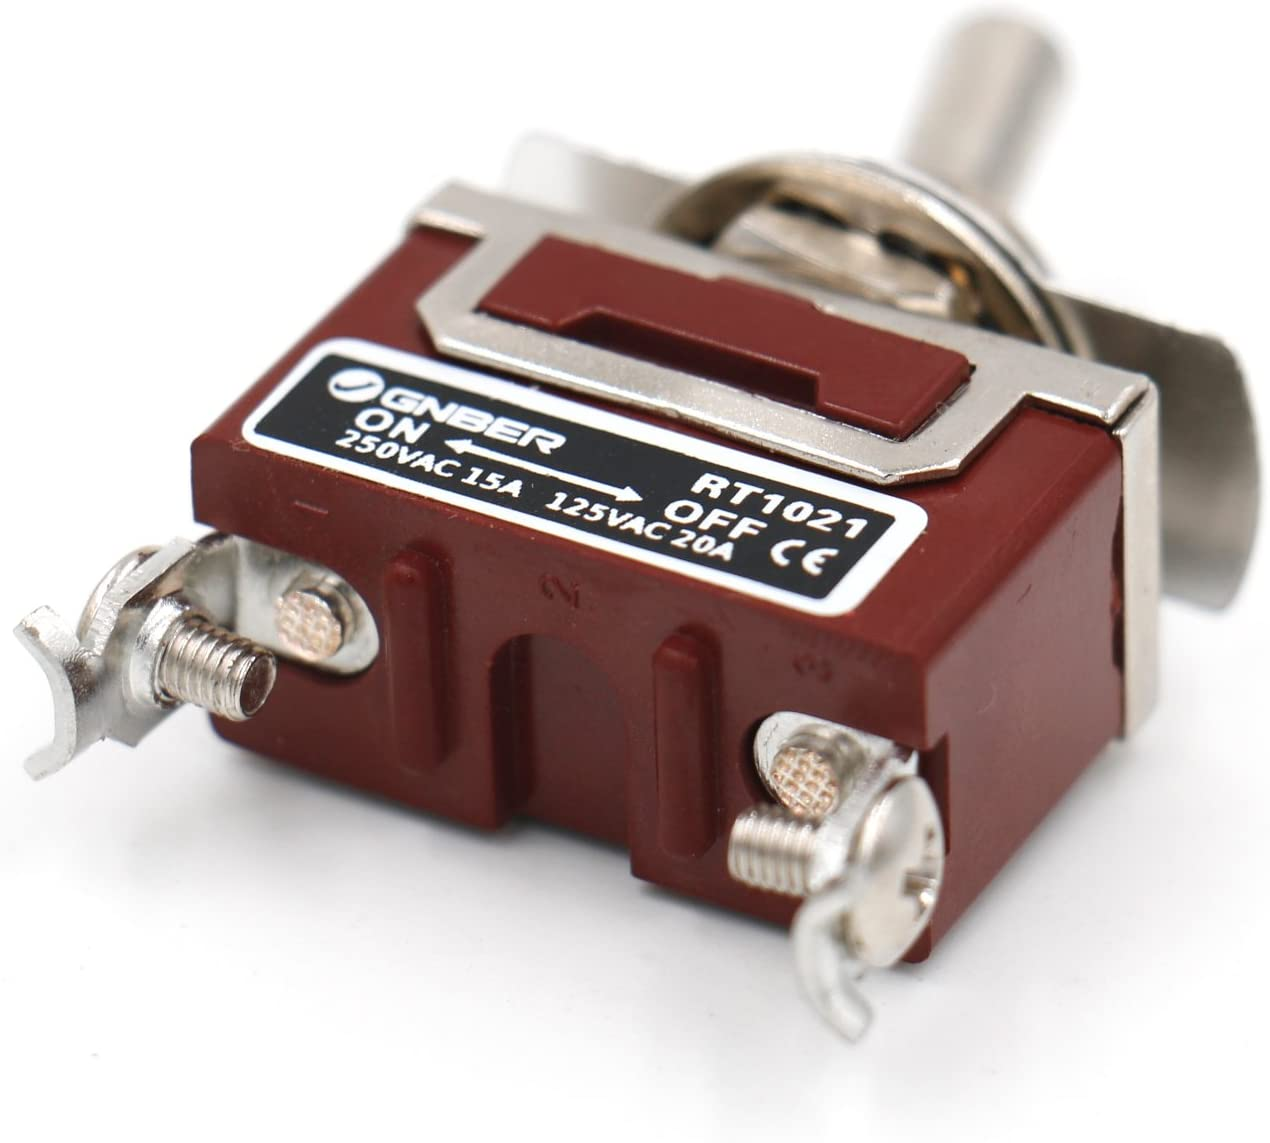 heschen Metall Toggle Switch SPST ON//OFF 2/Position Pflege 15/A 250/VAC CE